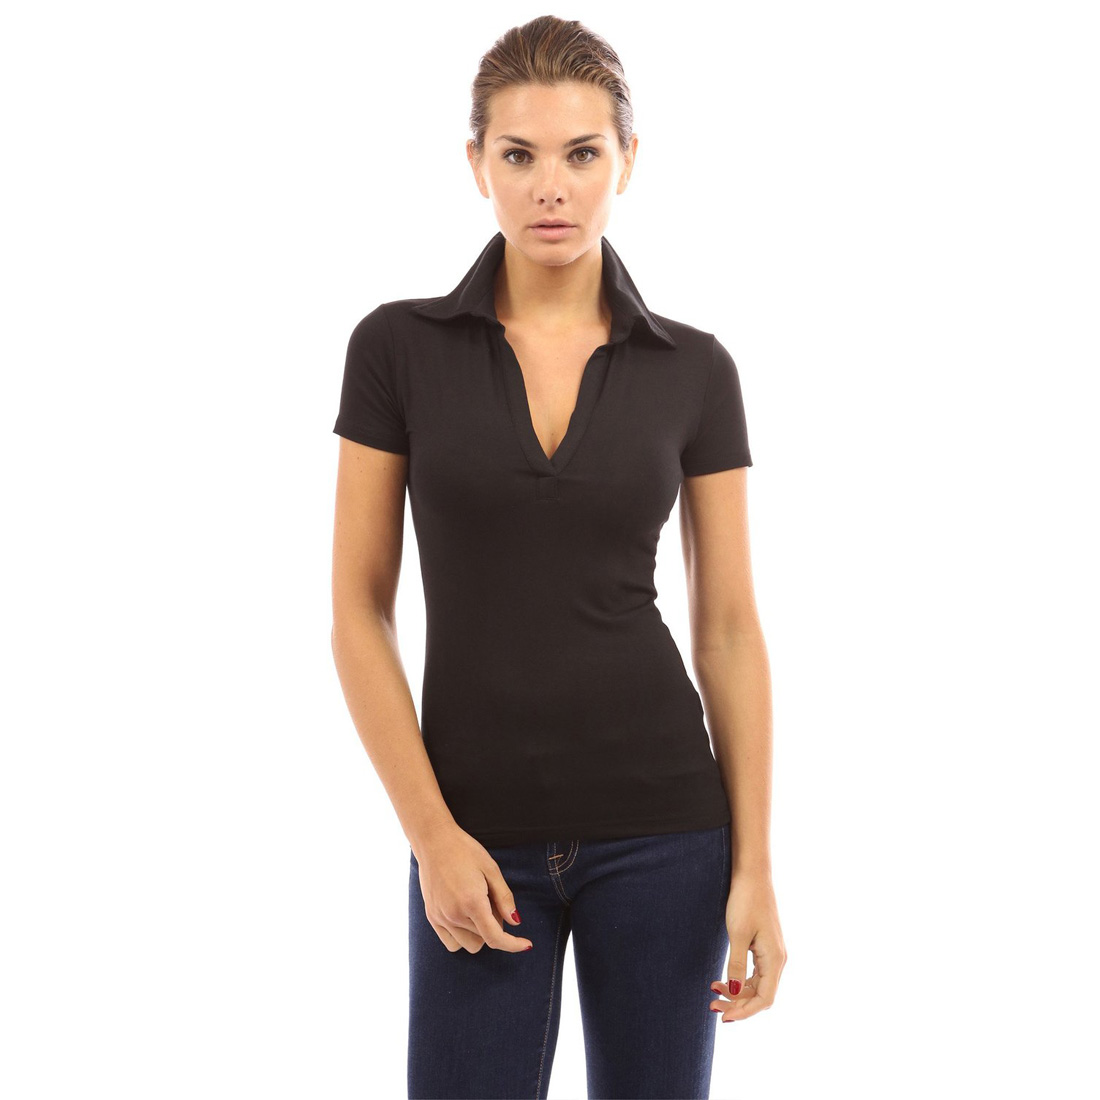 Shop women's V-neck athletic tops from DICK'S Sporting Goods today. If you find a lower price on women's V-neck athletic tops somewhere else, we'll match it with our Best Price Guarantee! Check out customer reviews on women's V-neck athletic tops and save big on a variety of products. Plus, ScoreCard members earn points on every purchase.